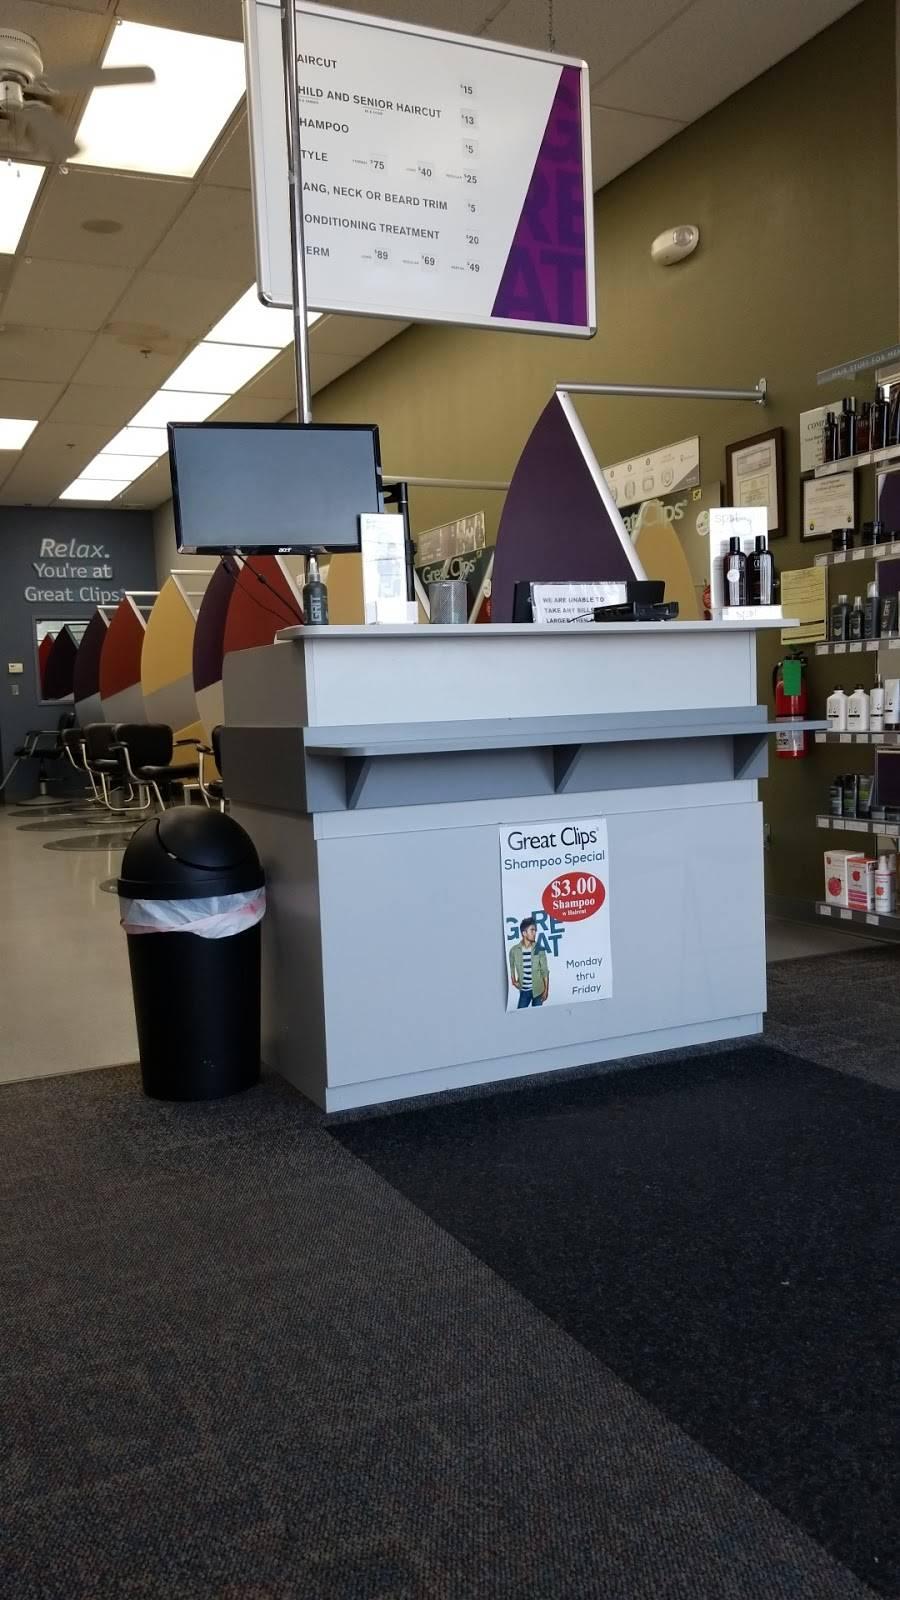 Great Clips - hair care  | Photo 5 of 8 | Address: 900 N Blue Mound Rd Ste 164, Saginaw, TX 76131, USA | Phone: (817) 847-7570